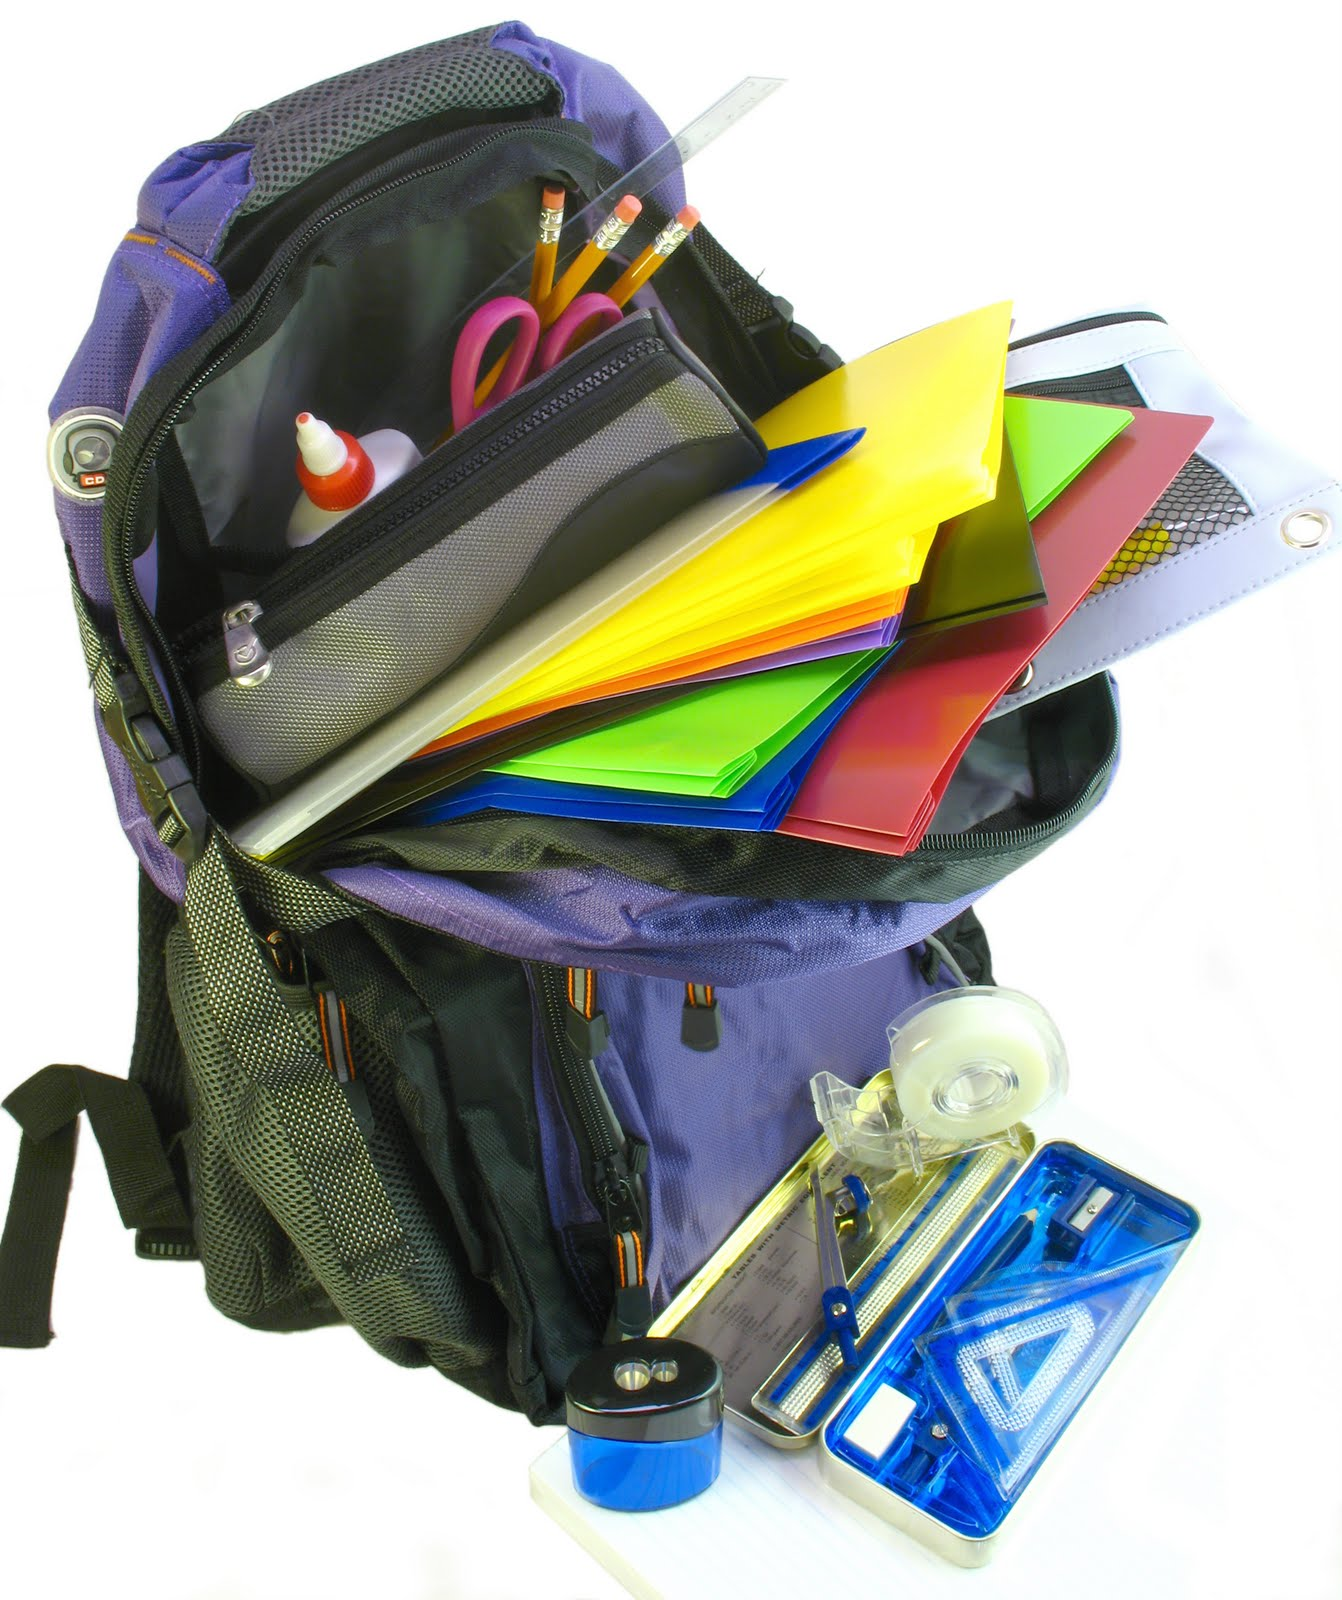 http://journeyzdotorg.files.wordpress.com/2012/08/backpack.jpg